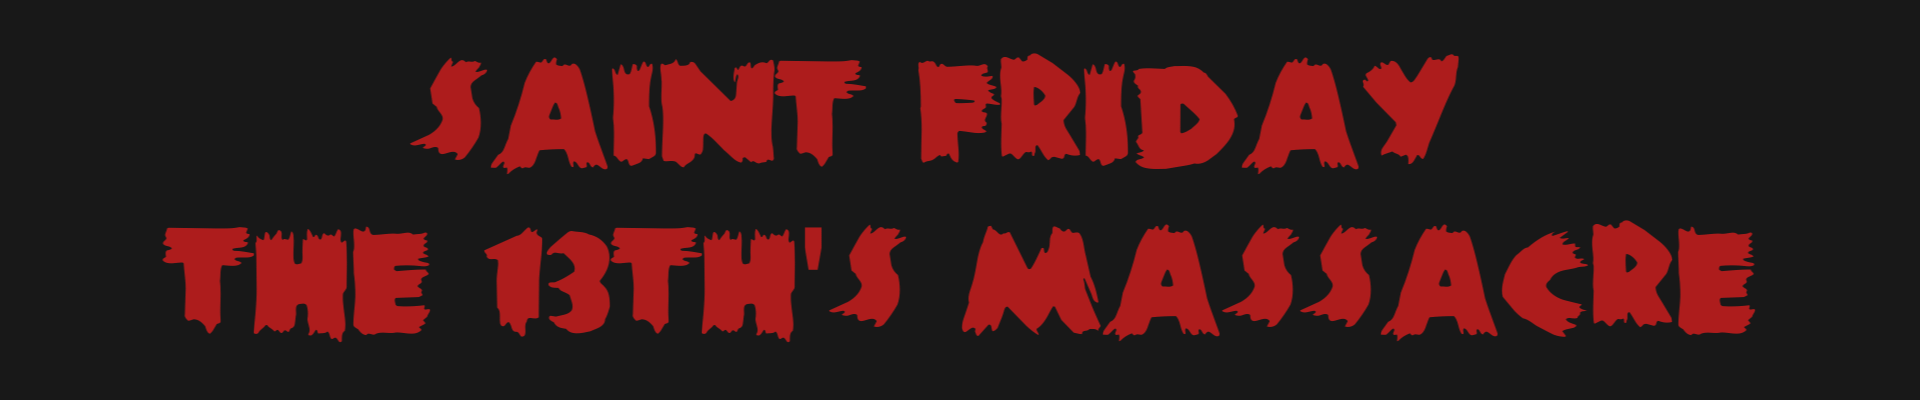 Saint Friday the 13th's Massacre